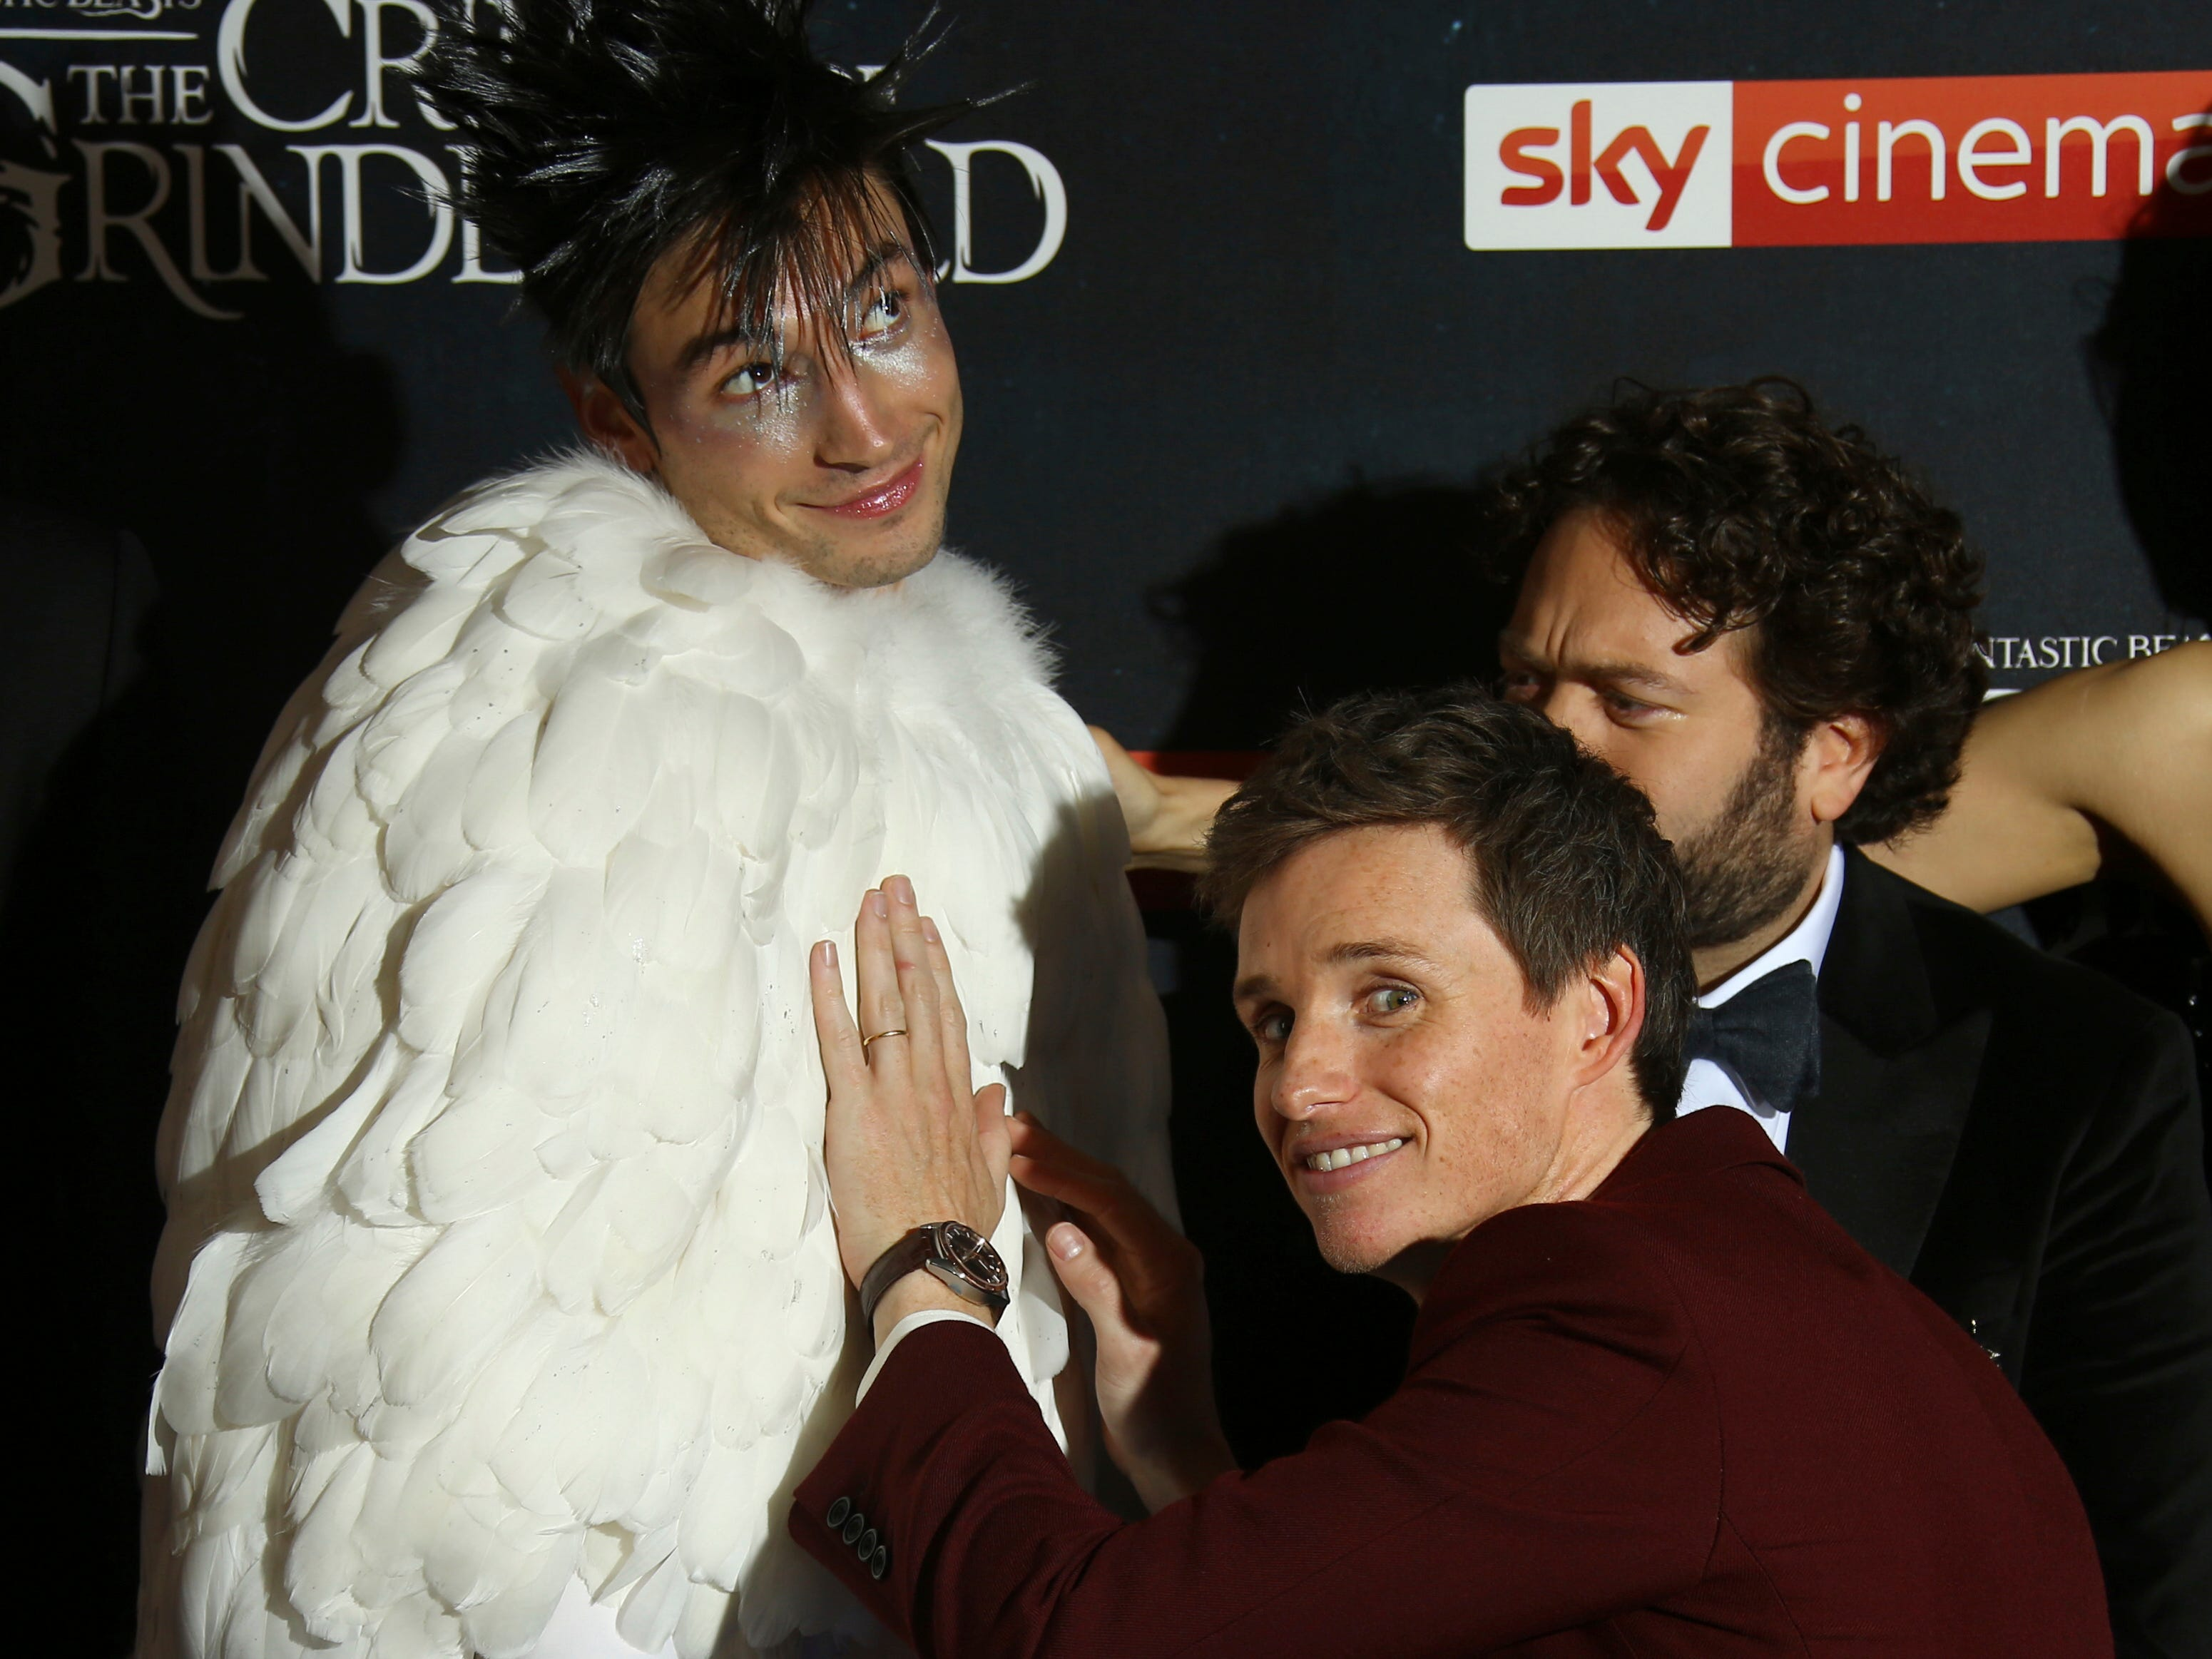 Actor Eddie Redmayne, right, jokes with fellow actor Ezra Miller as they pose for photographers upon arrival at the premiere of the film 'Fantastic Beasts: The Crimes of Grindelwald', at a central London cinema, Tuesday, Nov. 13, 2018.